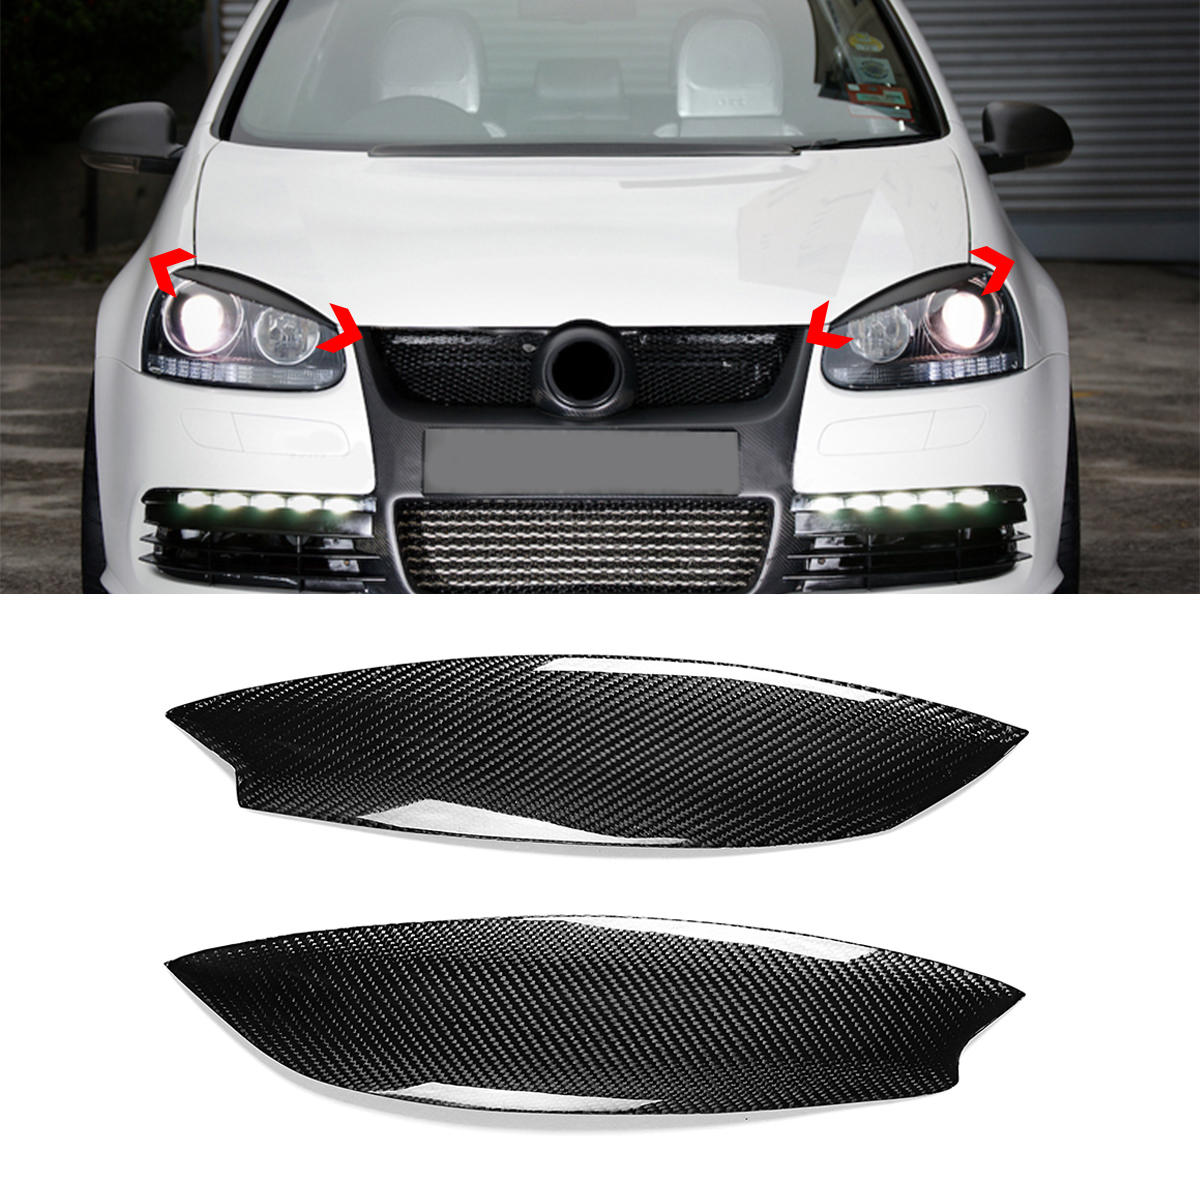 Pair Car Carbon Fiber Headlight Eyebrow Eyelid Abs Trim Cover For Vw Golf Gti R Mk5 05 07 Cod